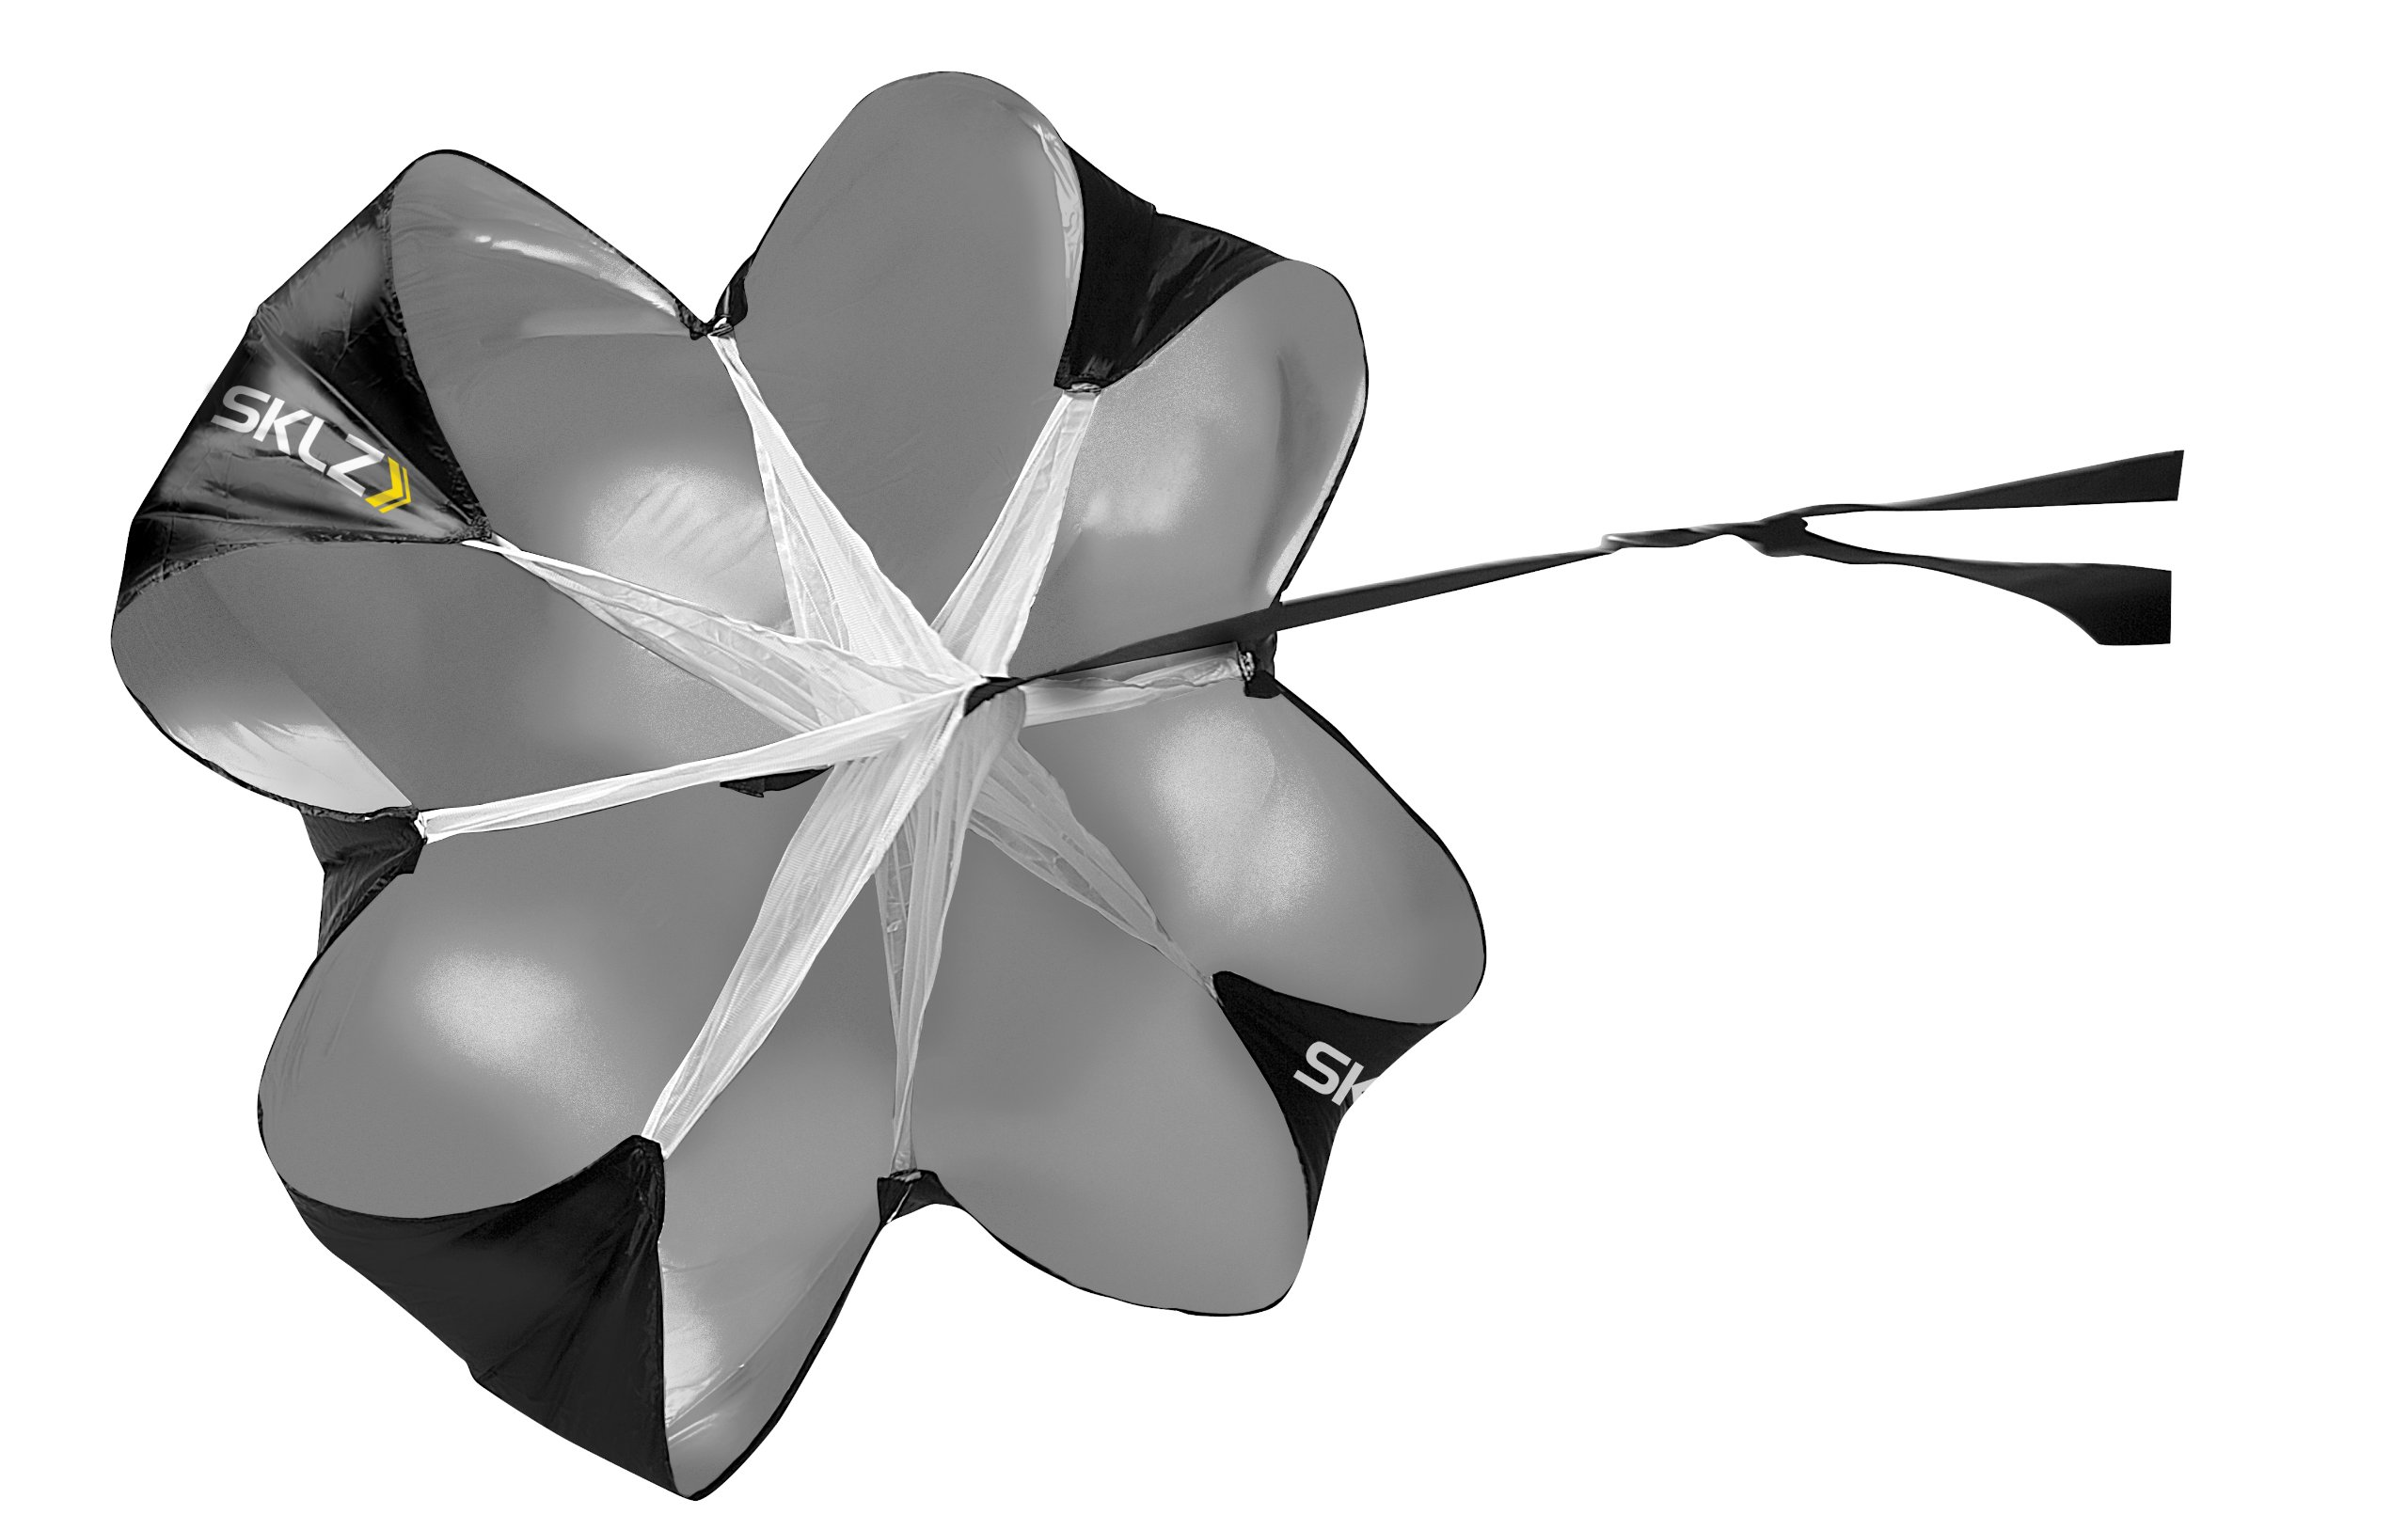 SKLZ Speed Chute - Resistance Spring Trainer - Speed Training Parachute Helps Maximize Acceleration and Top Running Speed